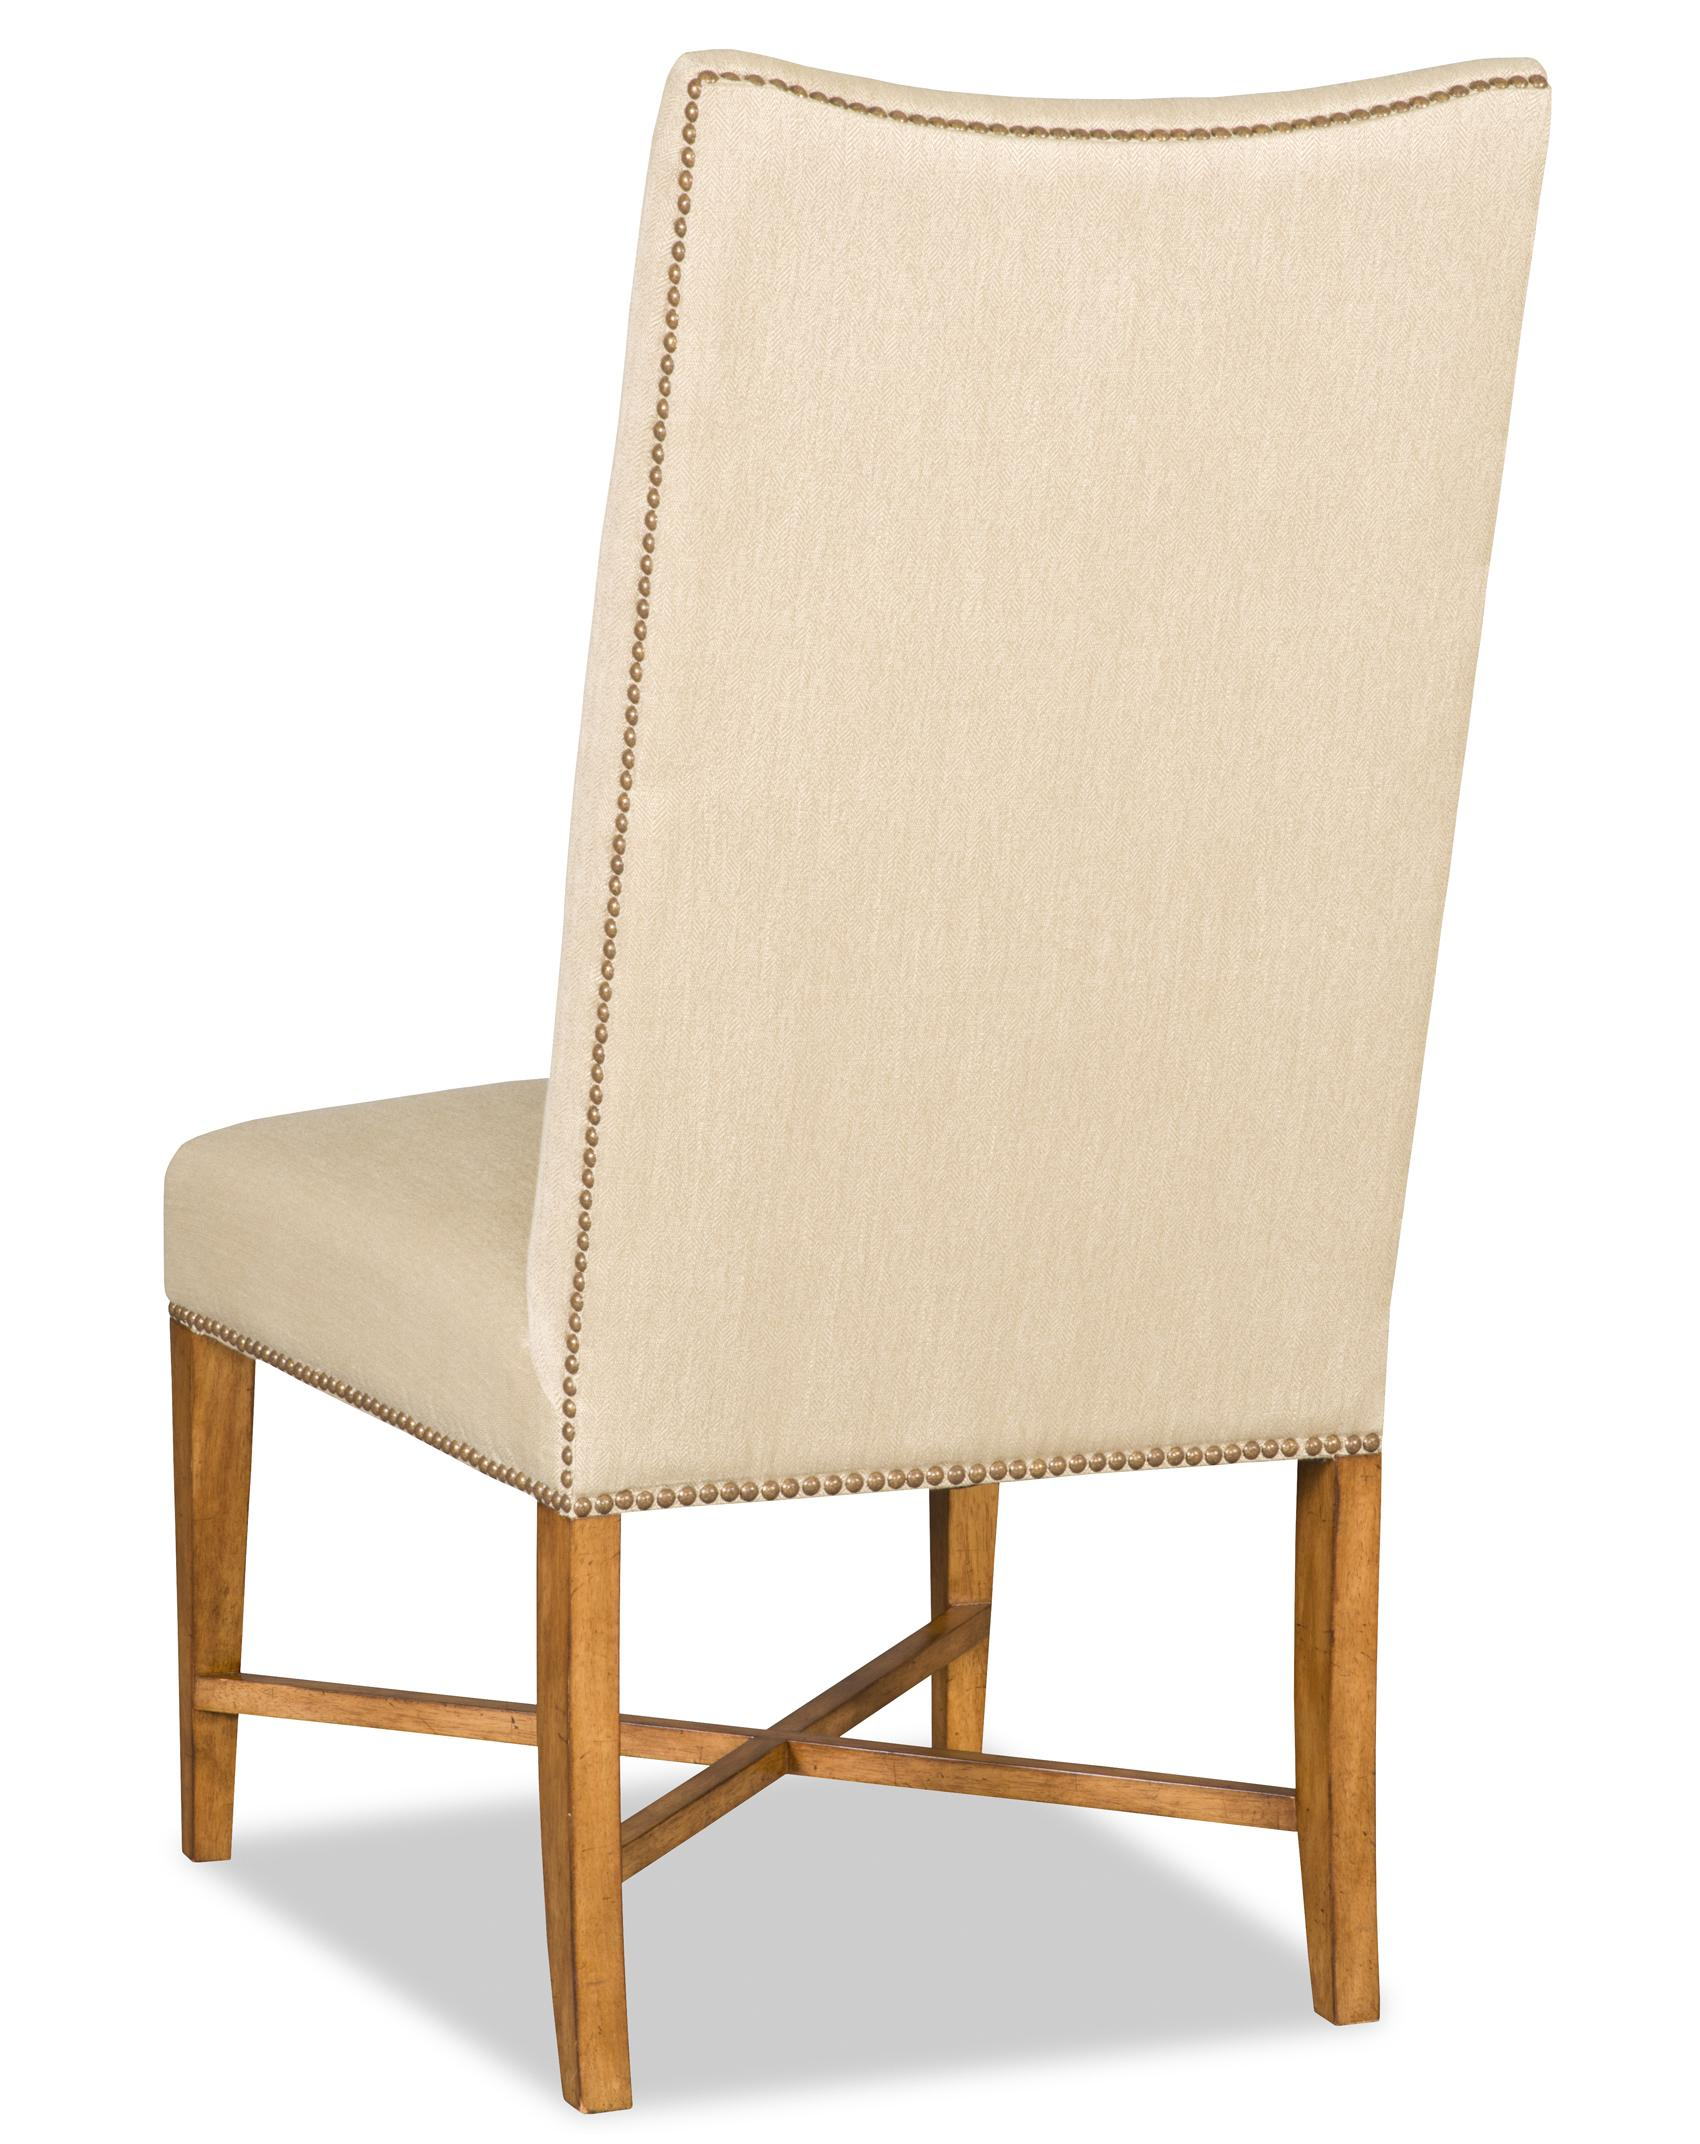 Hooker Furniture Dining Chairs Arabella Dining Side Chair with X